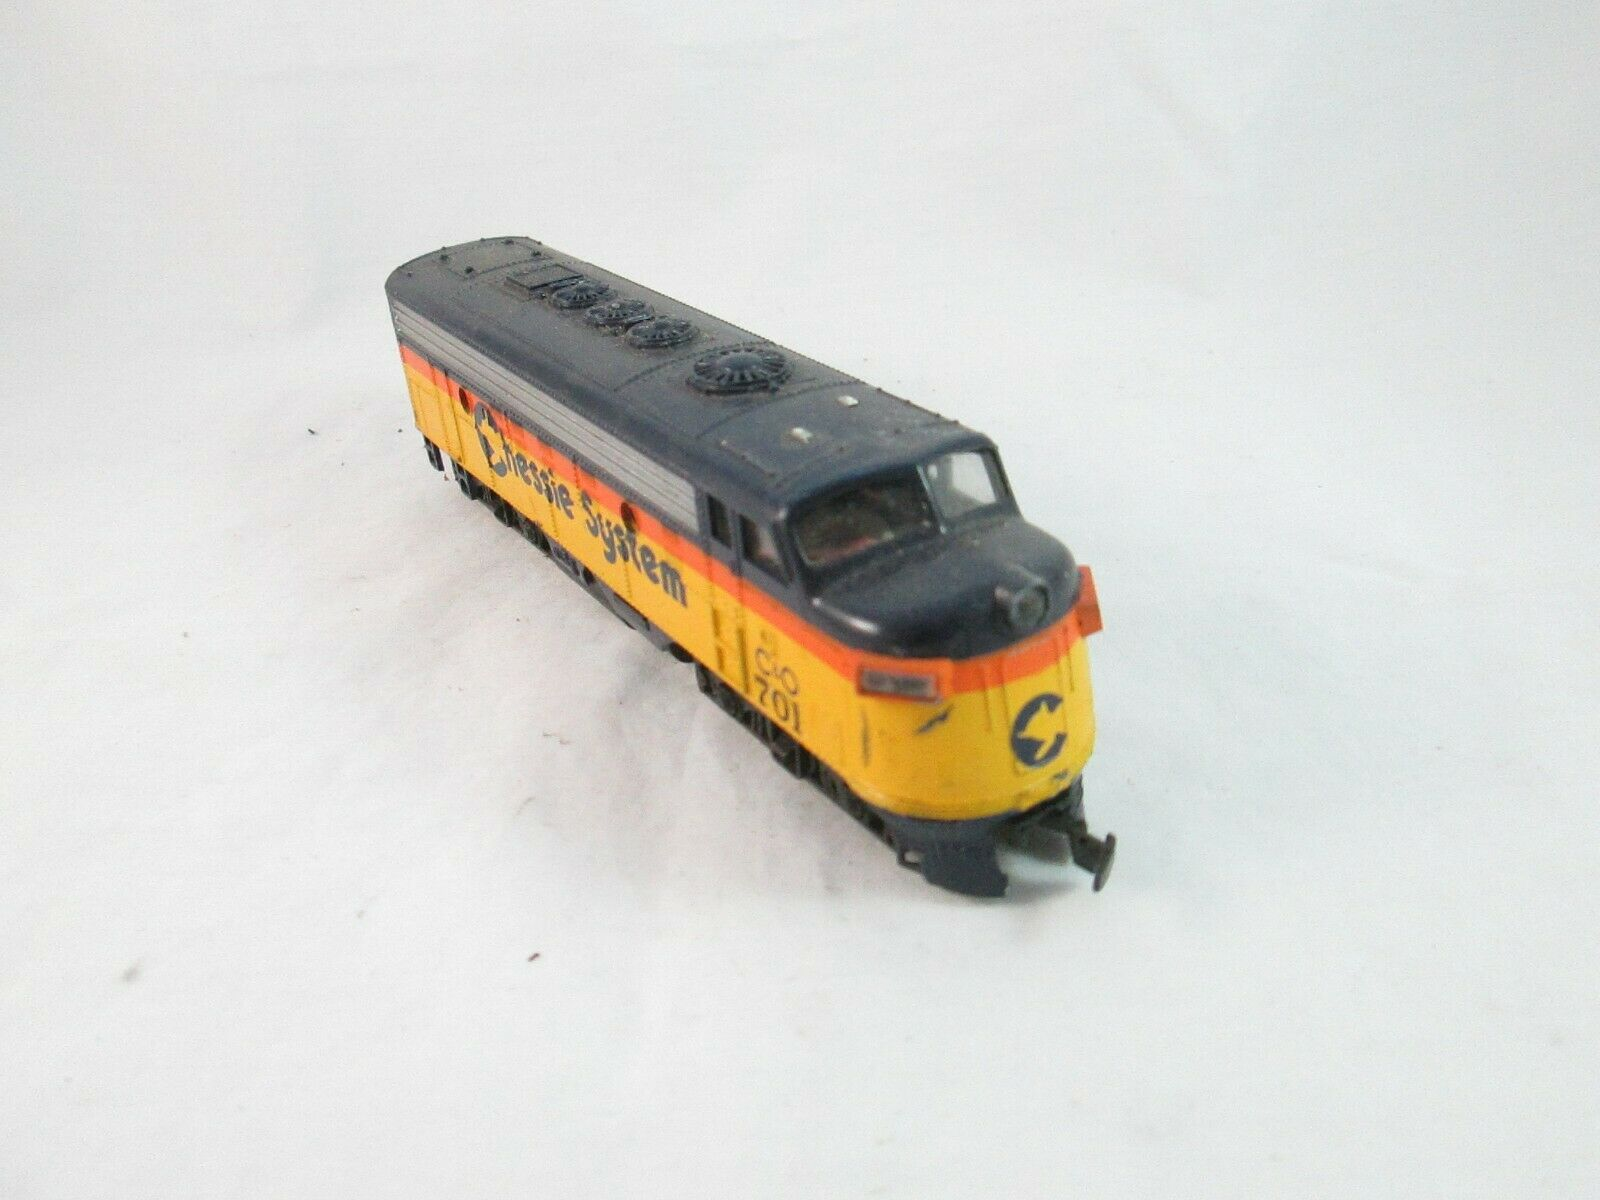 Vintage HO Train Passenger Locomotive Chessie System C&O 701 - Bachmann